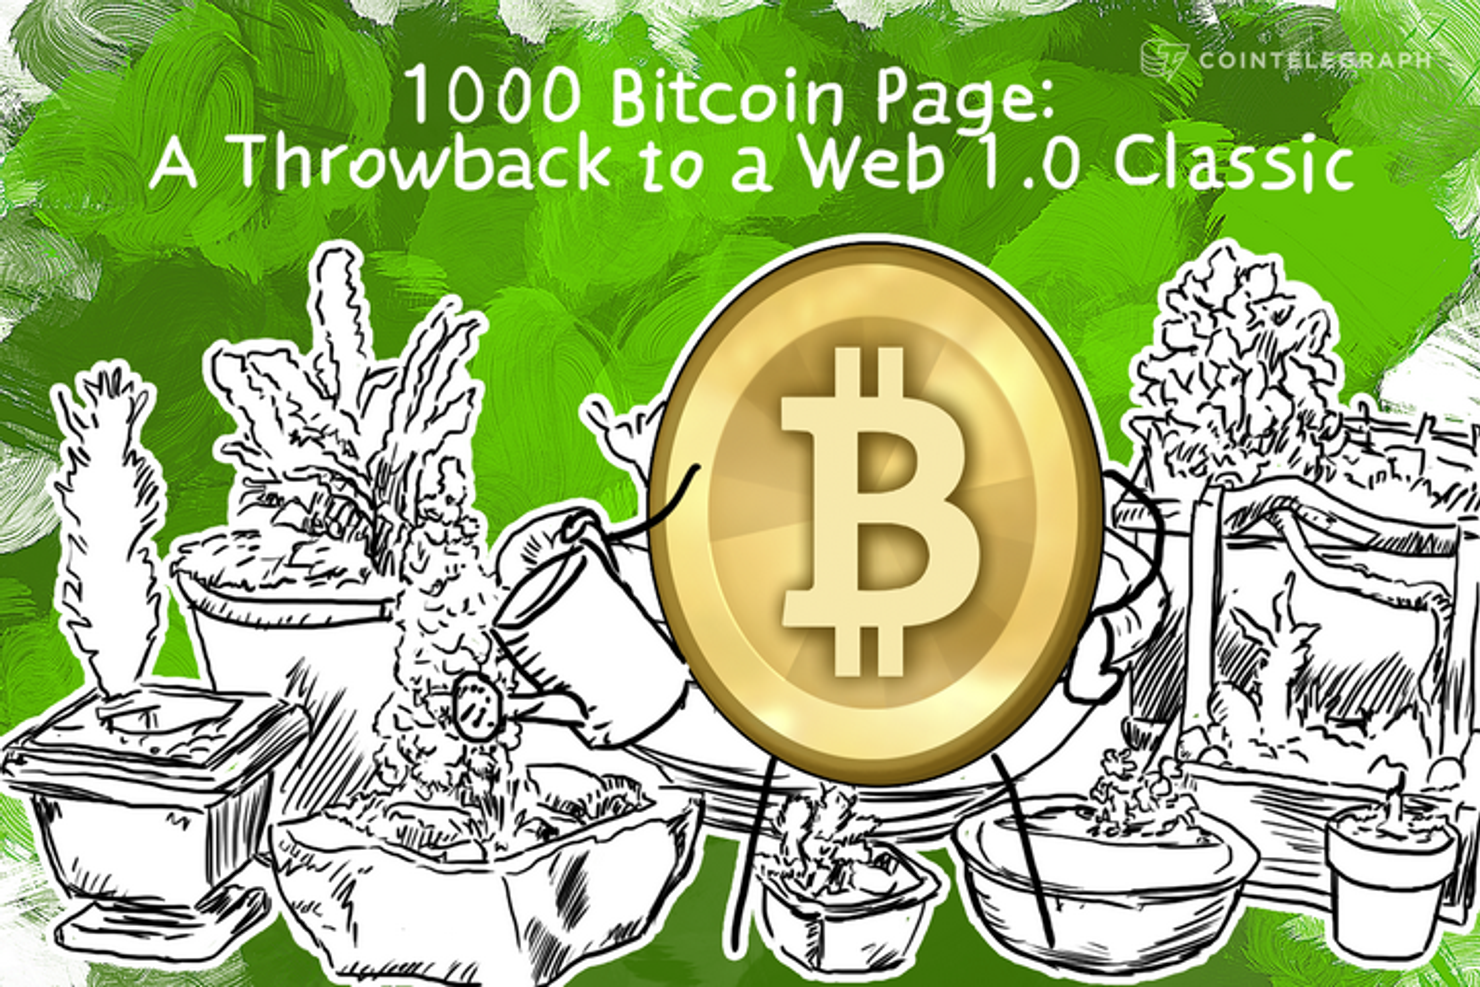 1000 Bitcoin Page: A Throwback to a Web 1.0 Classic.